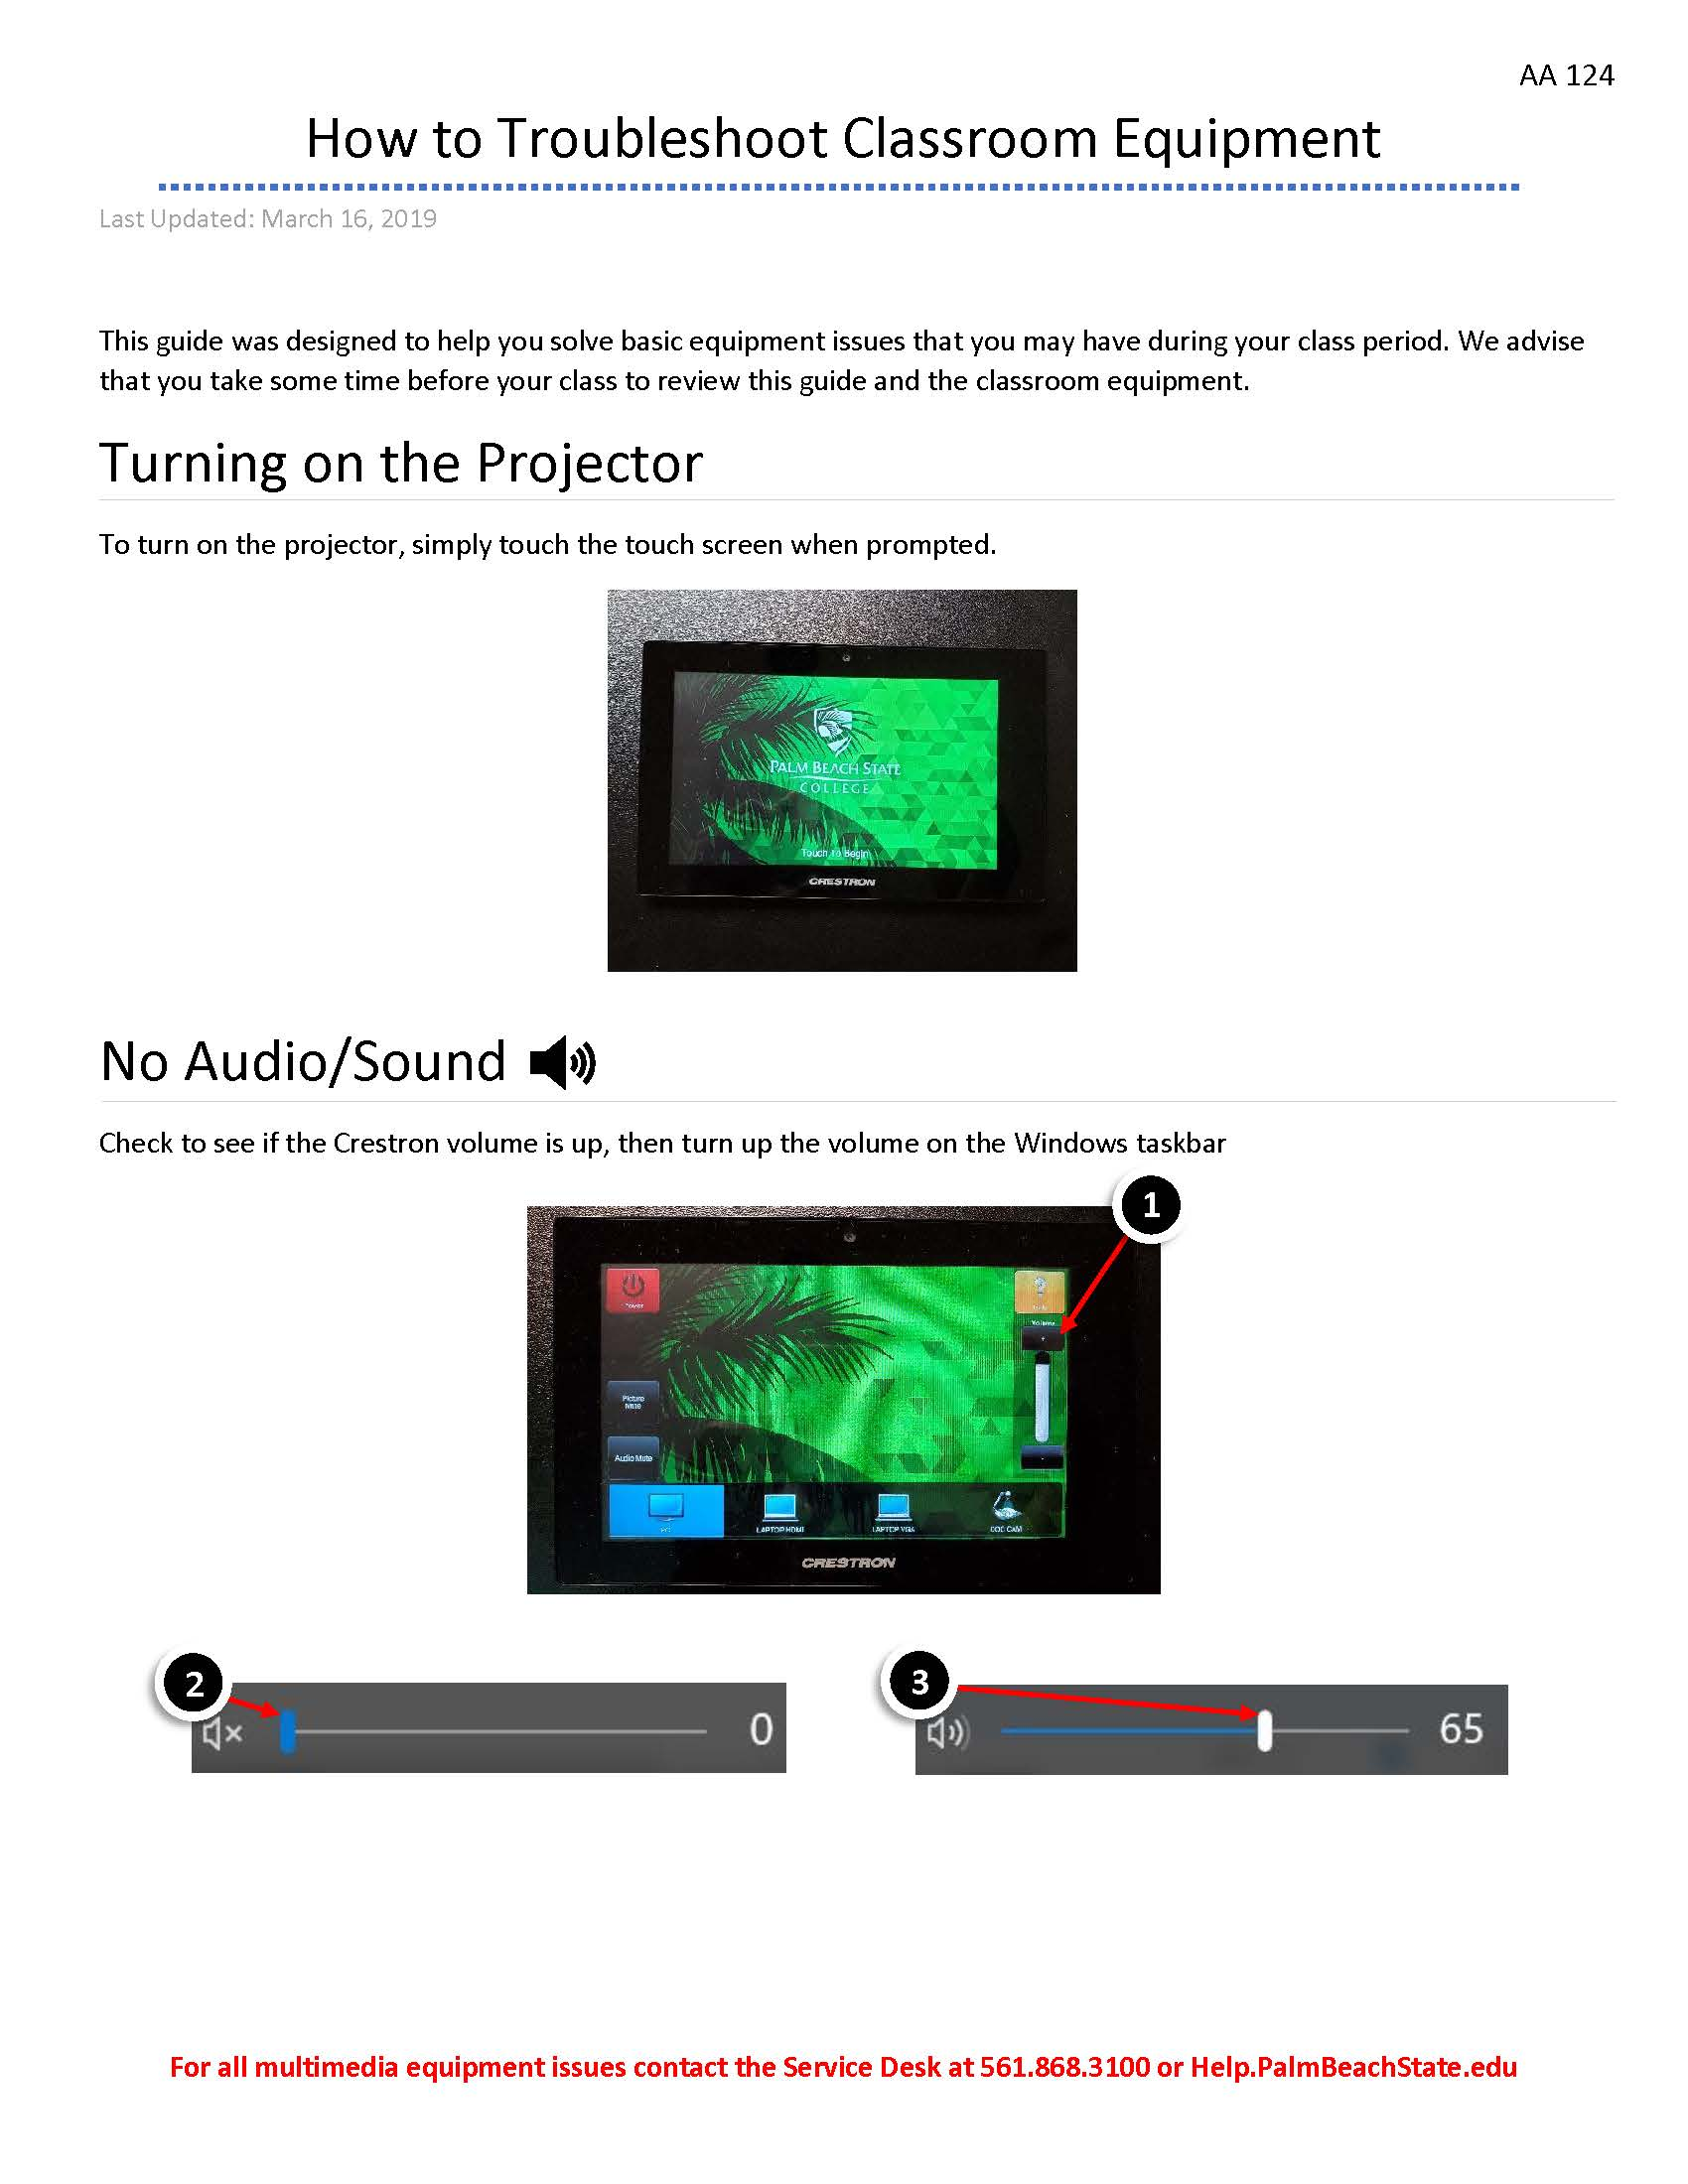 AA124 Multimedia Guide